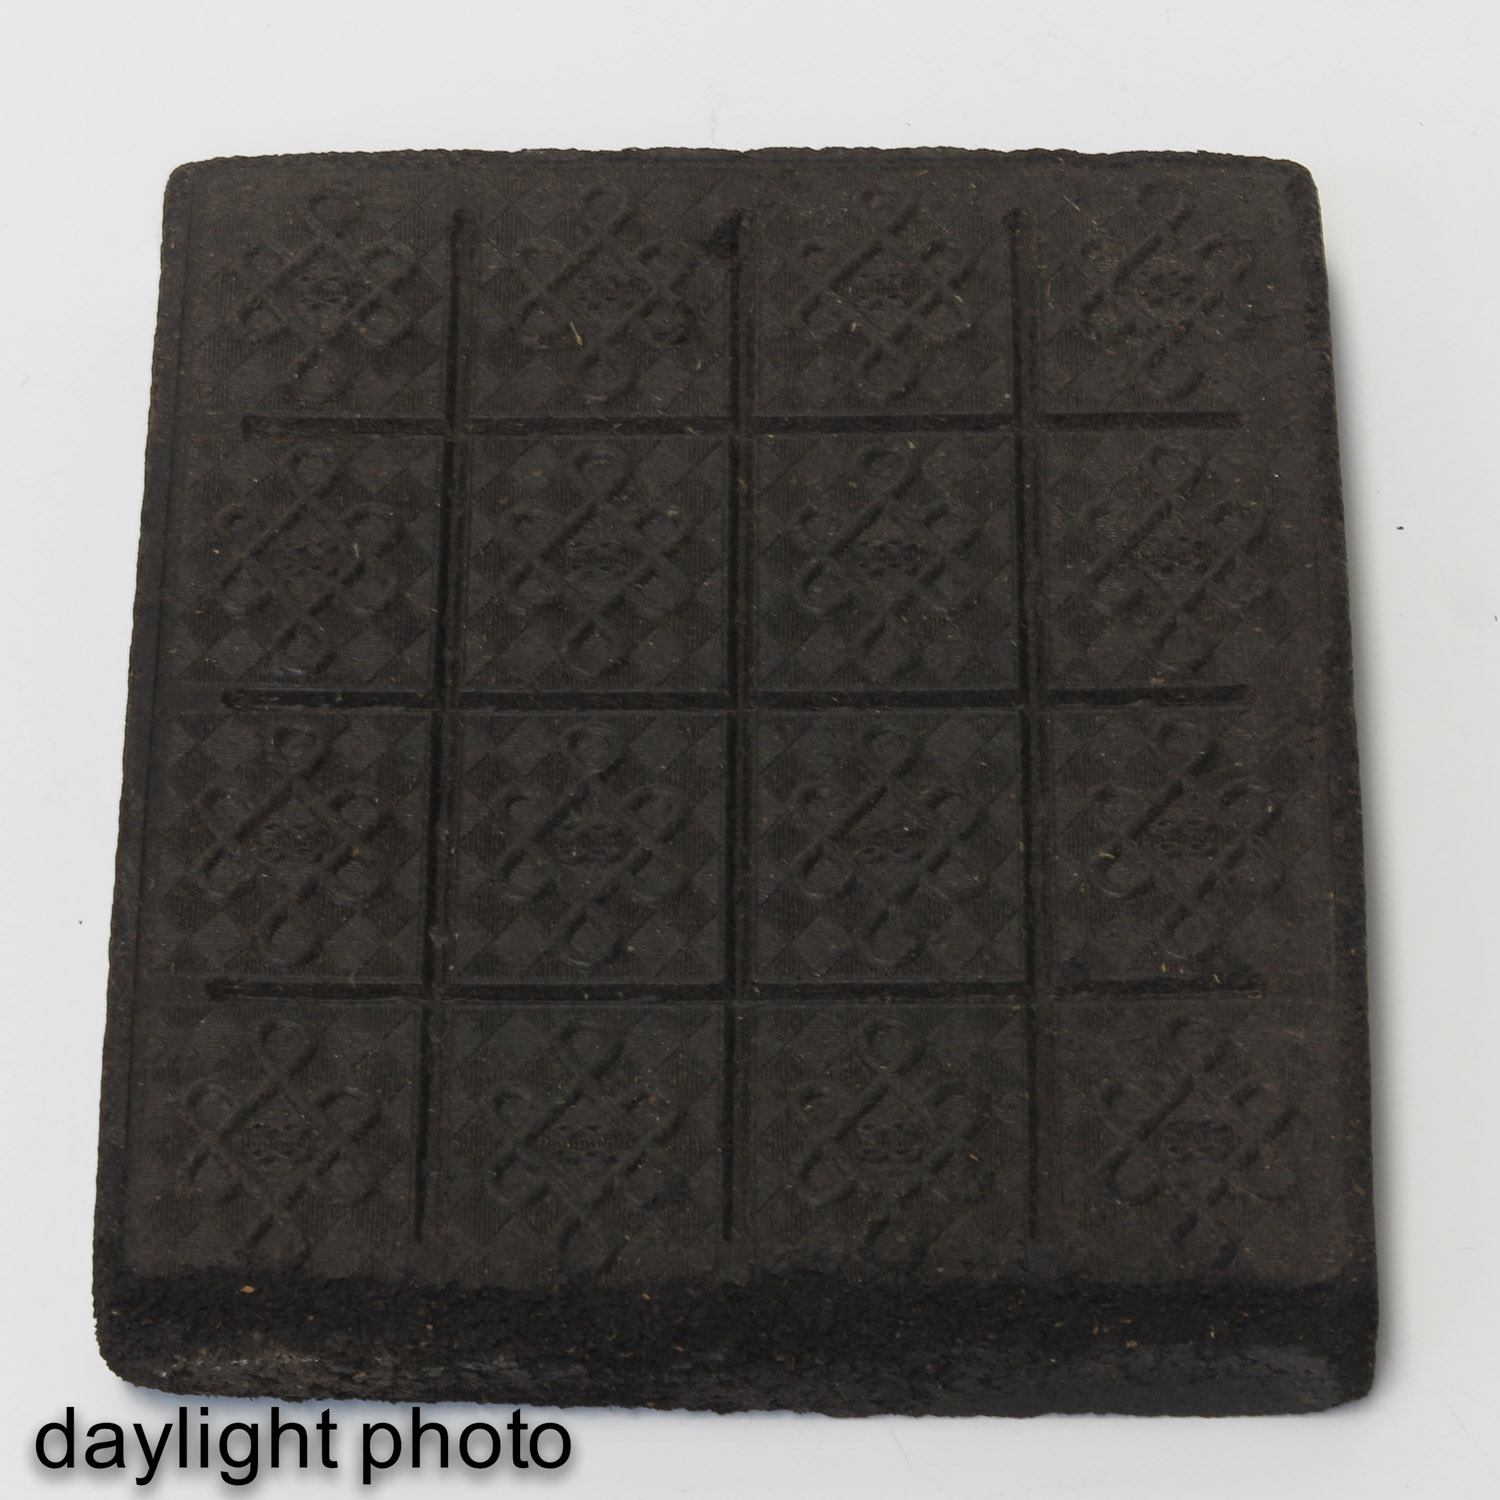 A Collection of 3 Tea Tiles - Image 10 of 10